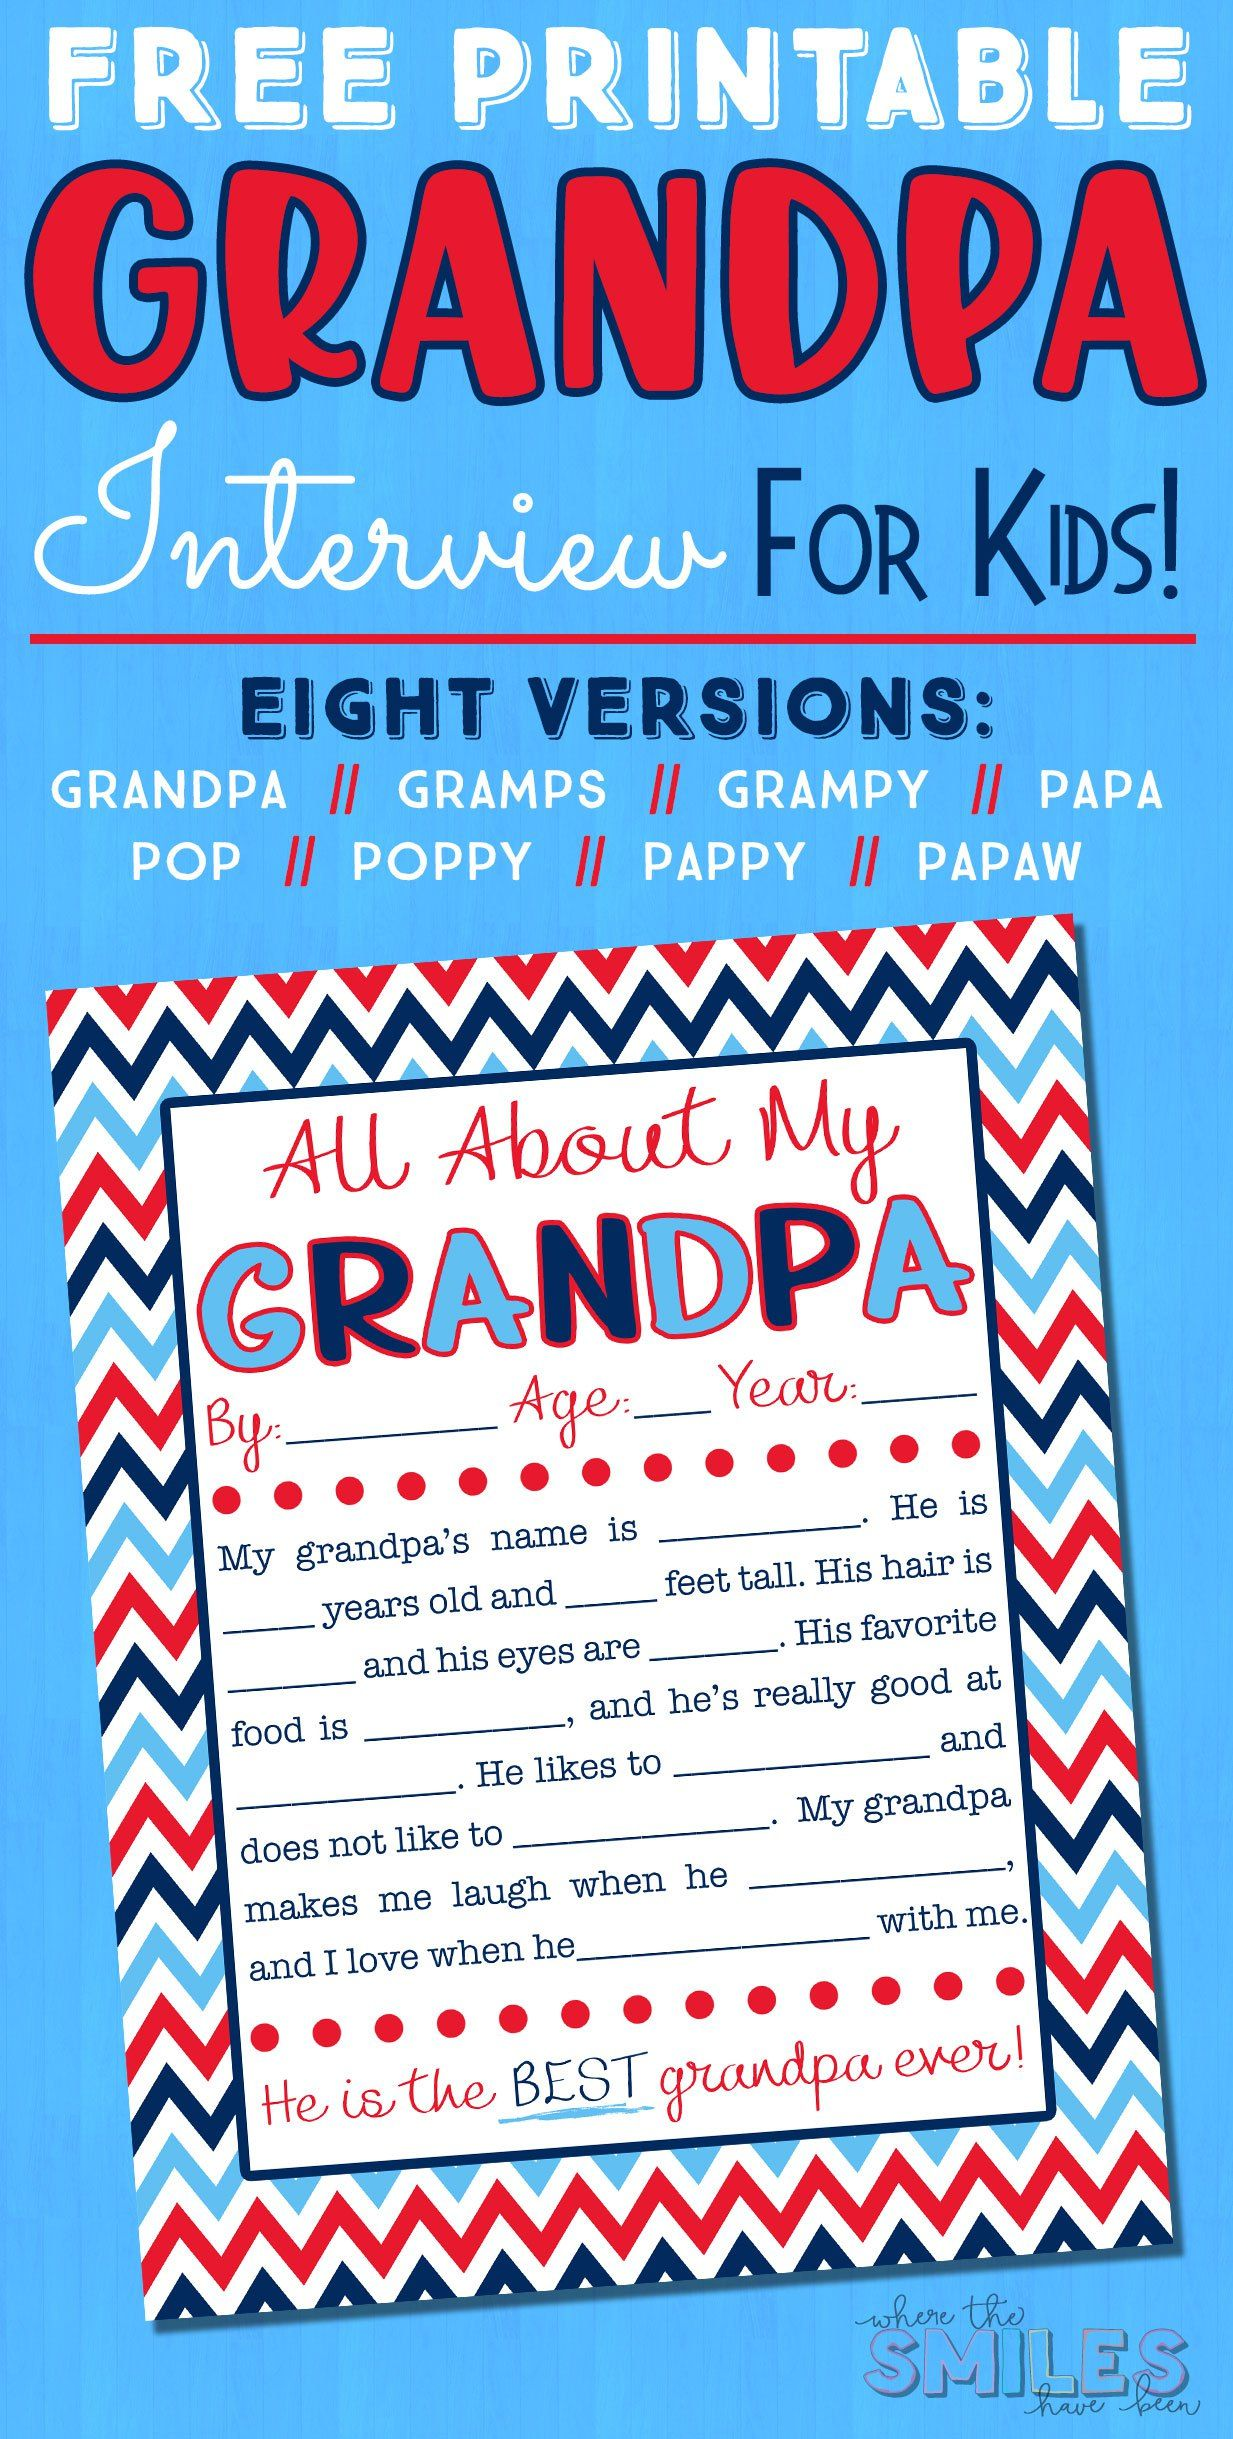 All About My Grandpa Interview With Free Printable Eight